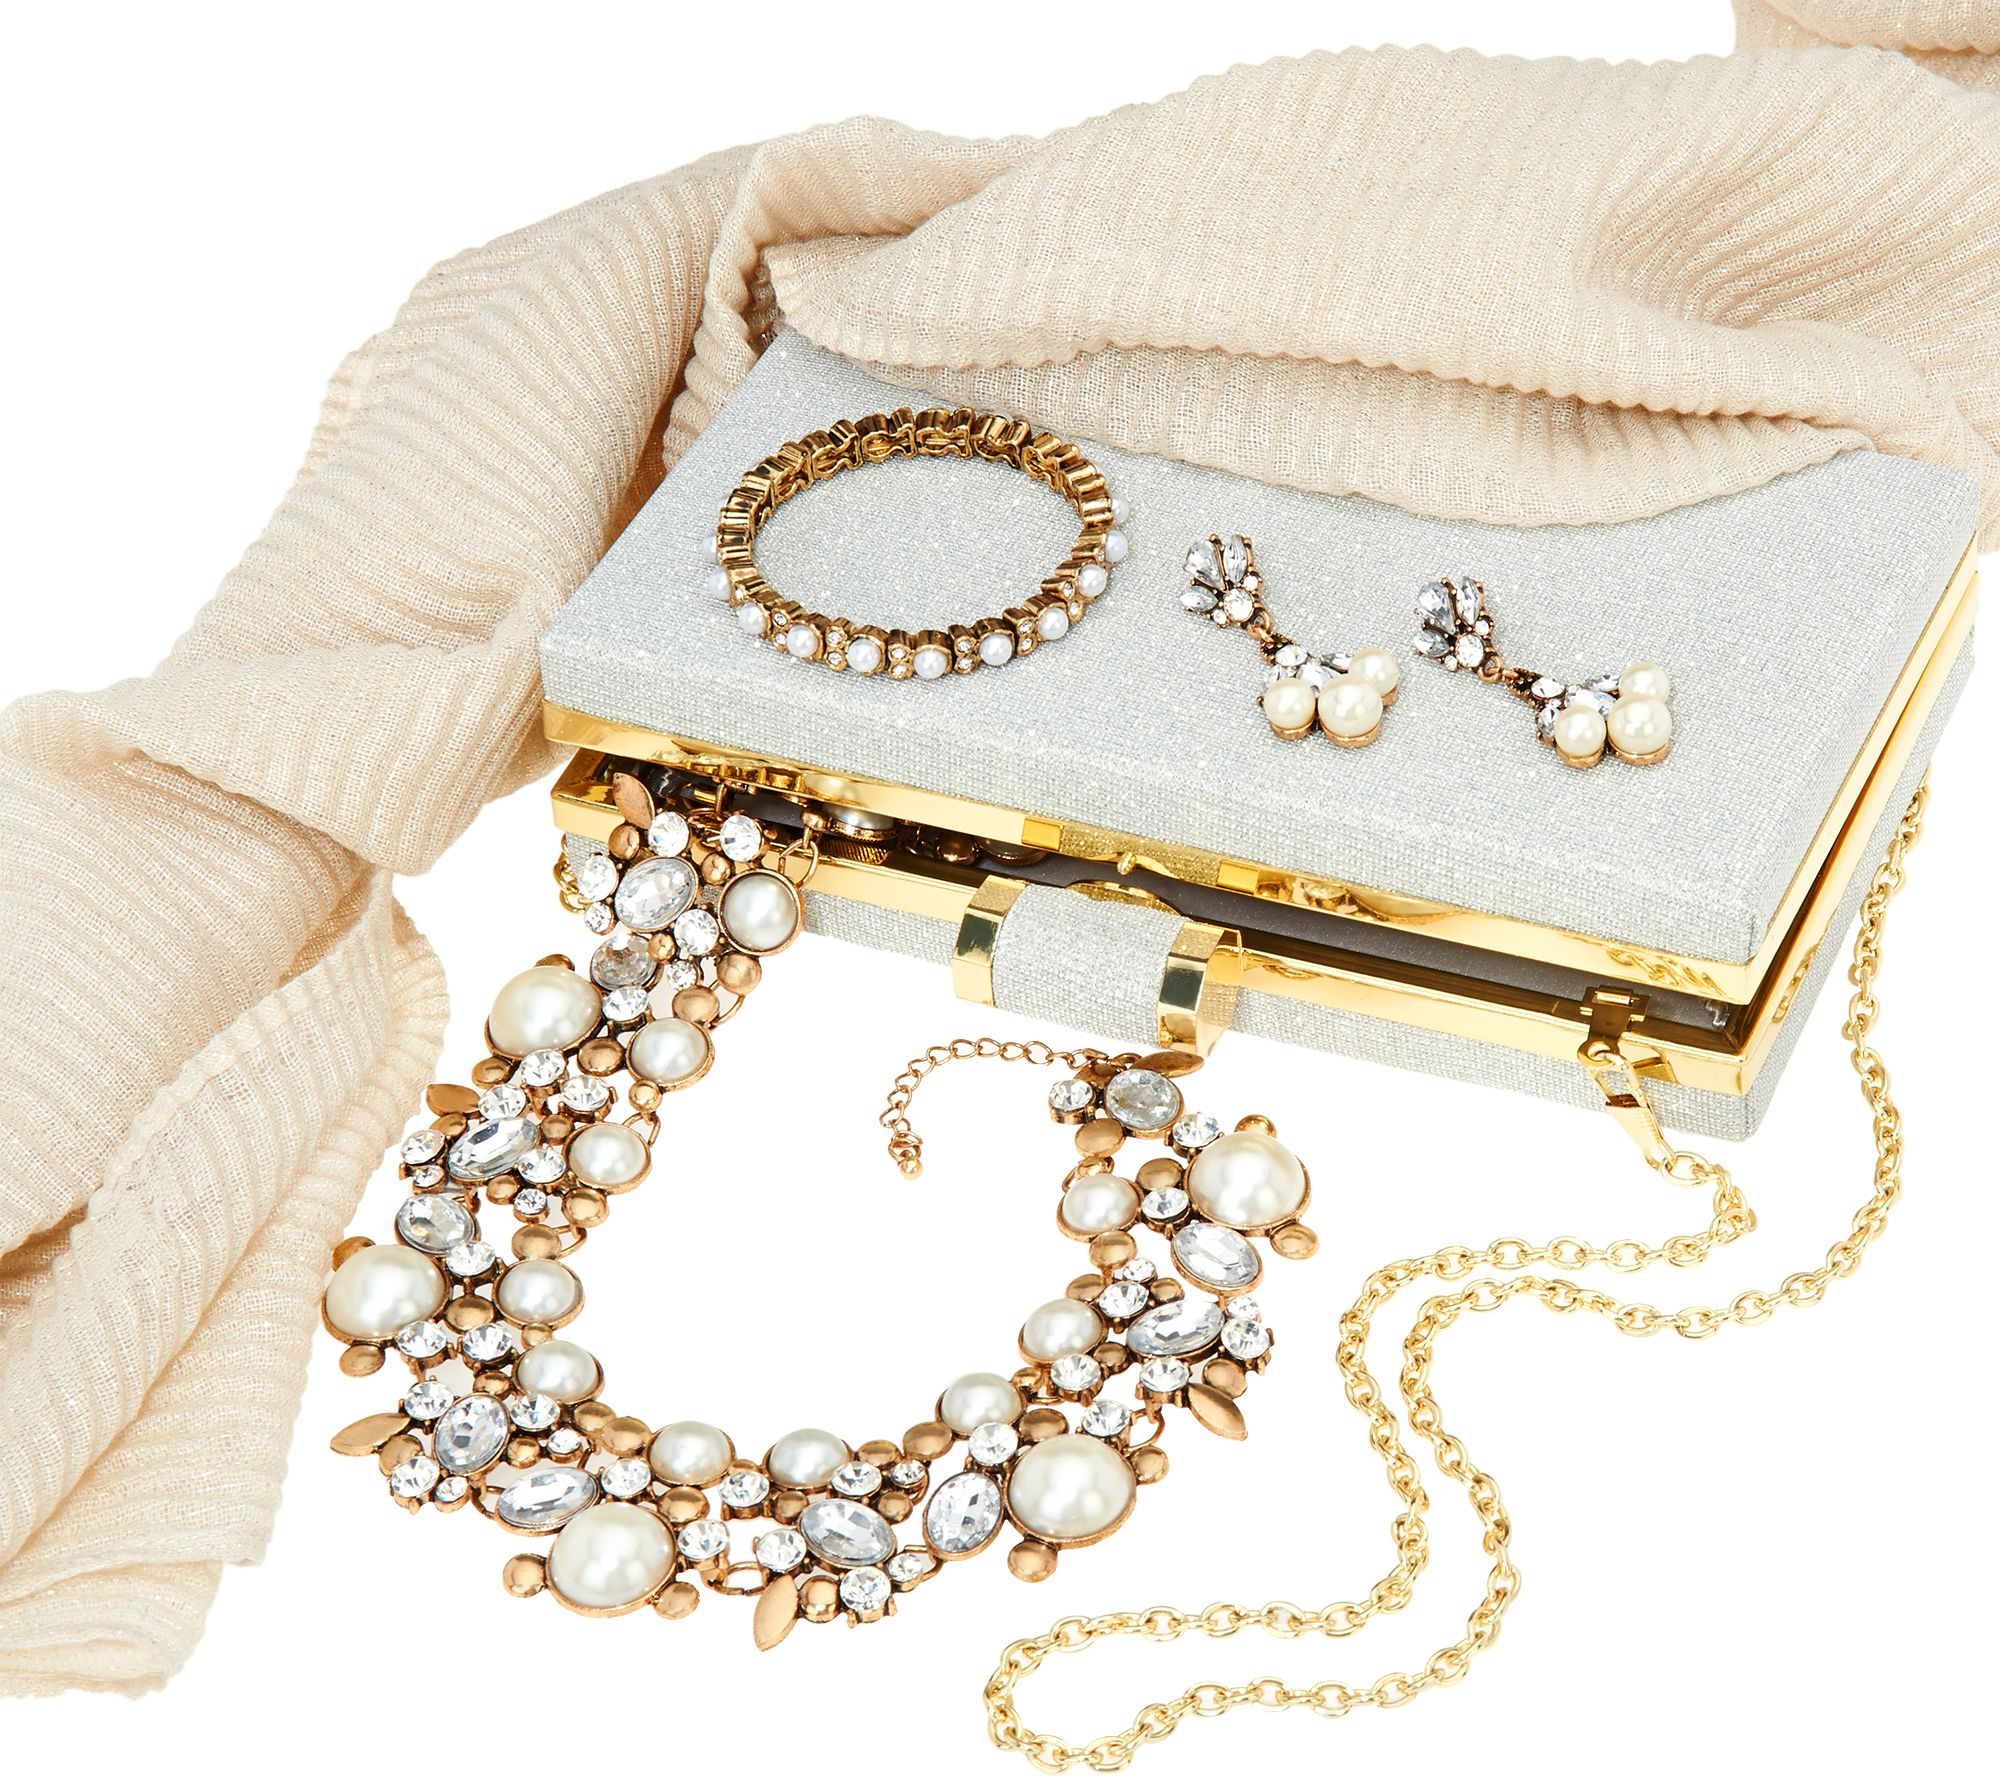 Charming Charlie Holiday Jewelry Accessory Set Page 1 QVCcom